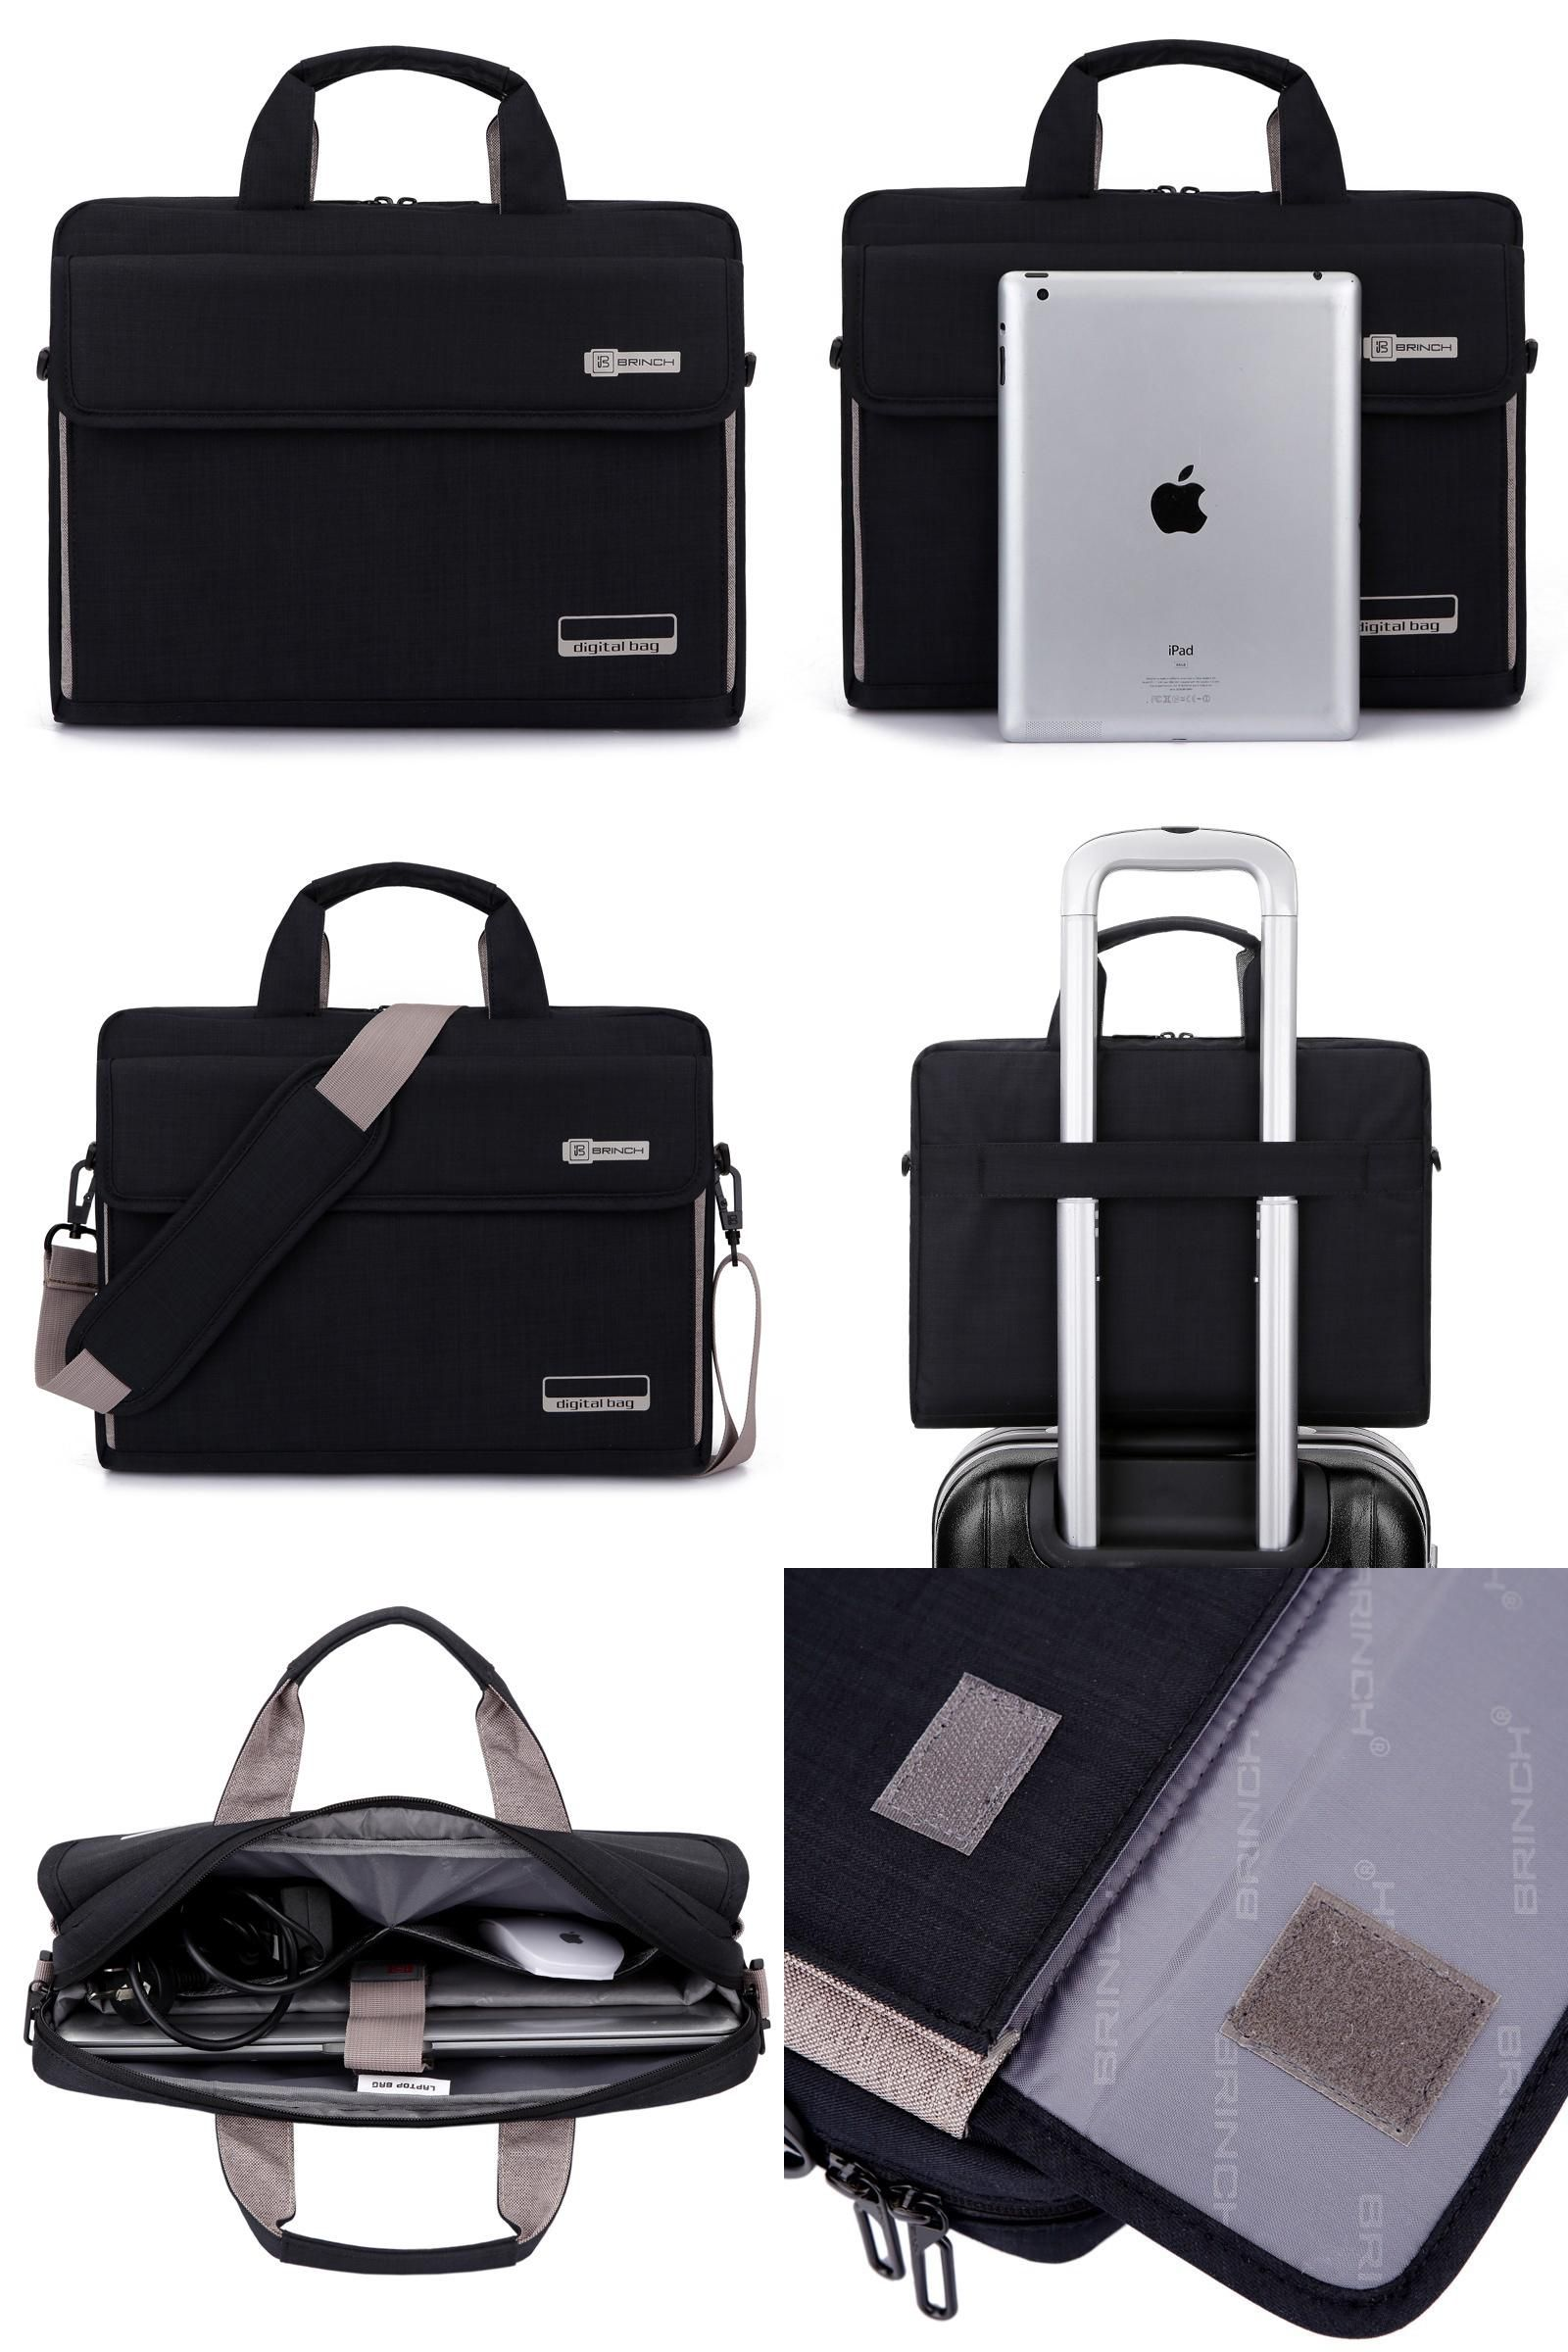 Brand New Laptop Bag Messenger /& Shoulder Bag Protective Case Cover For Macbook